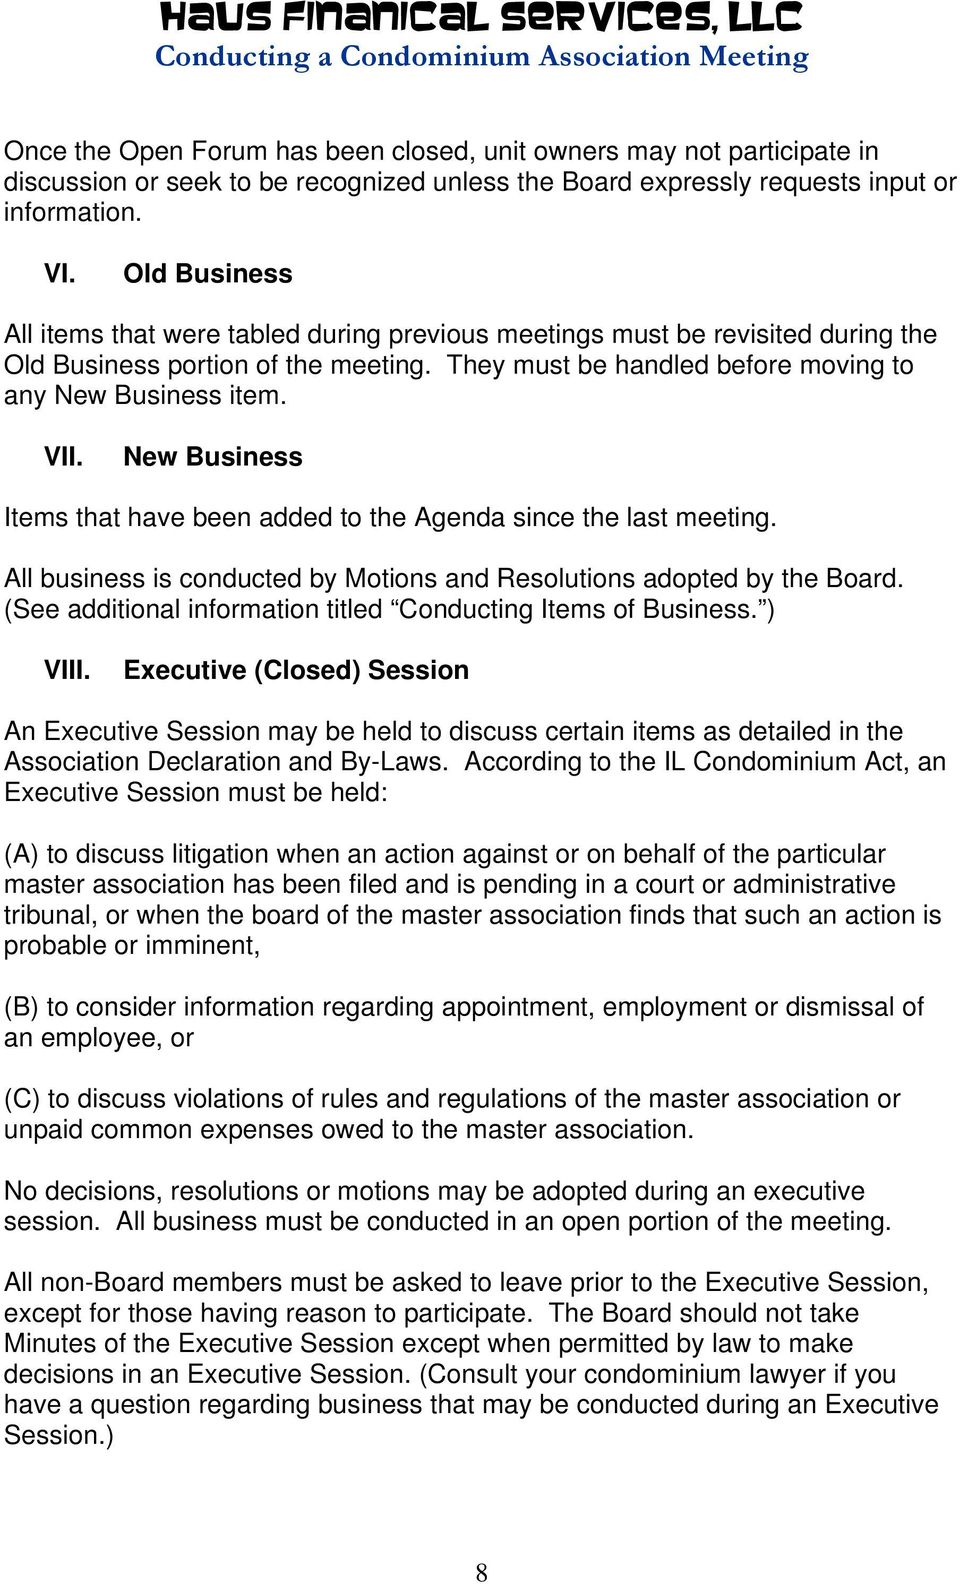 New Business Items that have been added to the Agenda since the last meeting. All business is conducted by Motions and Resolutions adopted by the Board.